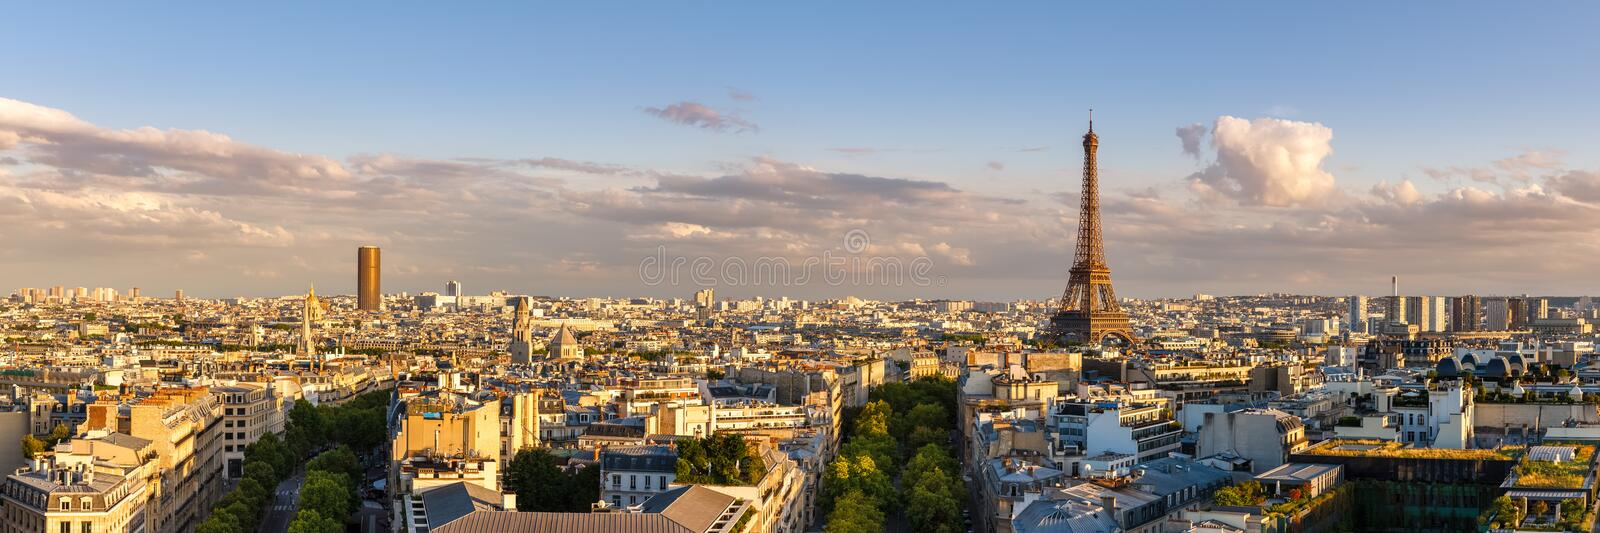 Panoramic summer view of Paris rooftops at sunset with the Eiffel Tower stock image